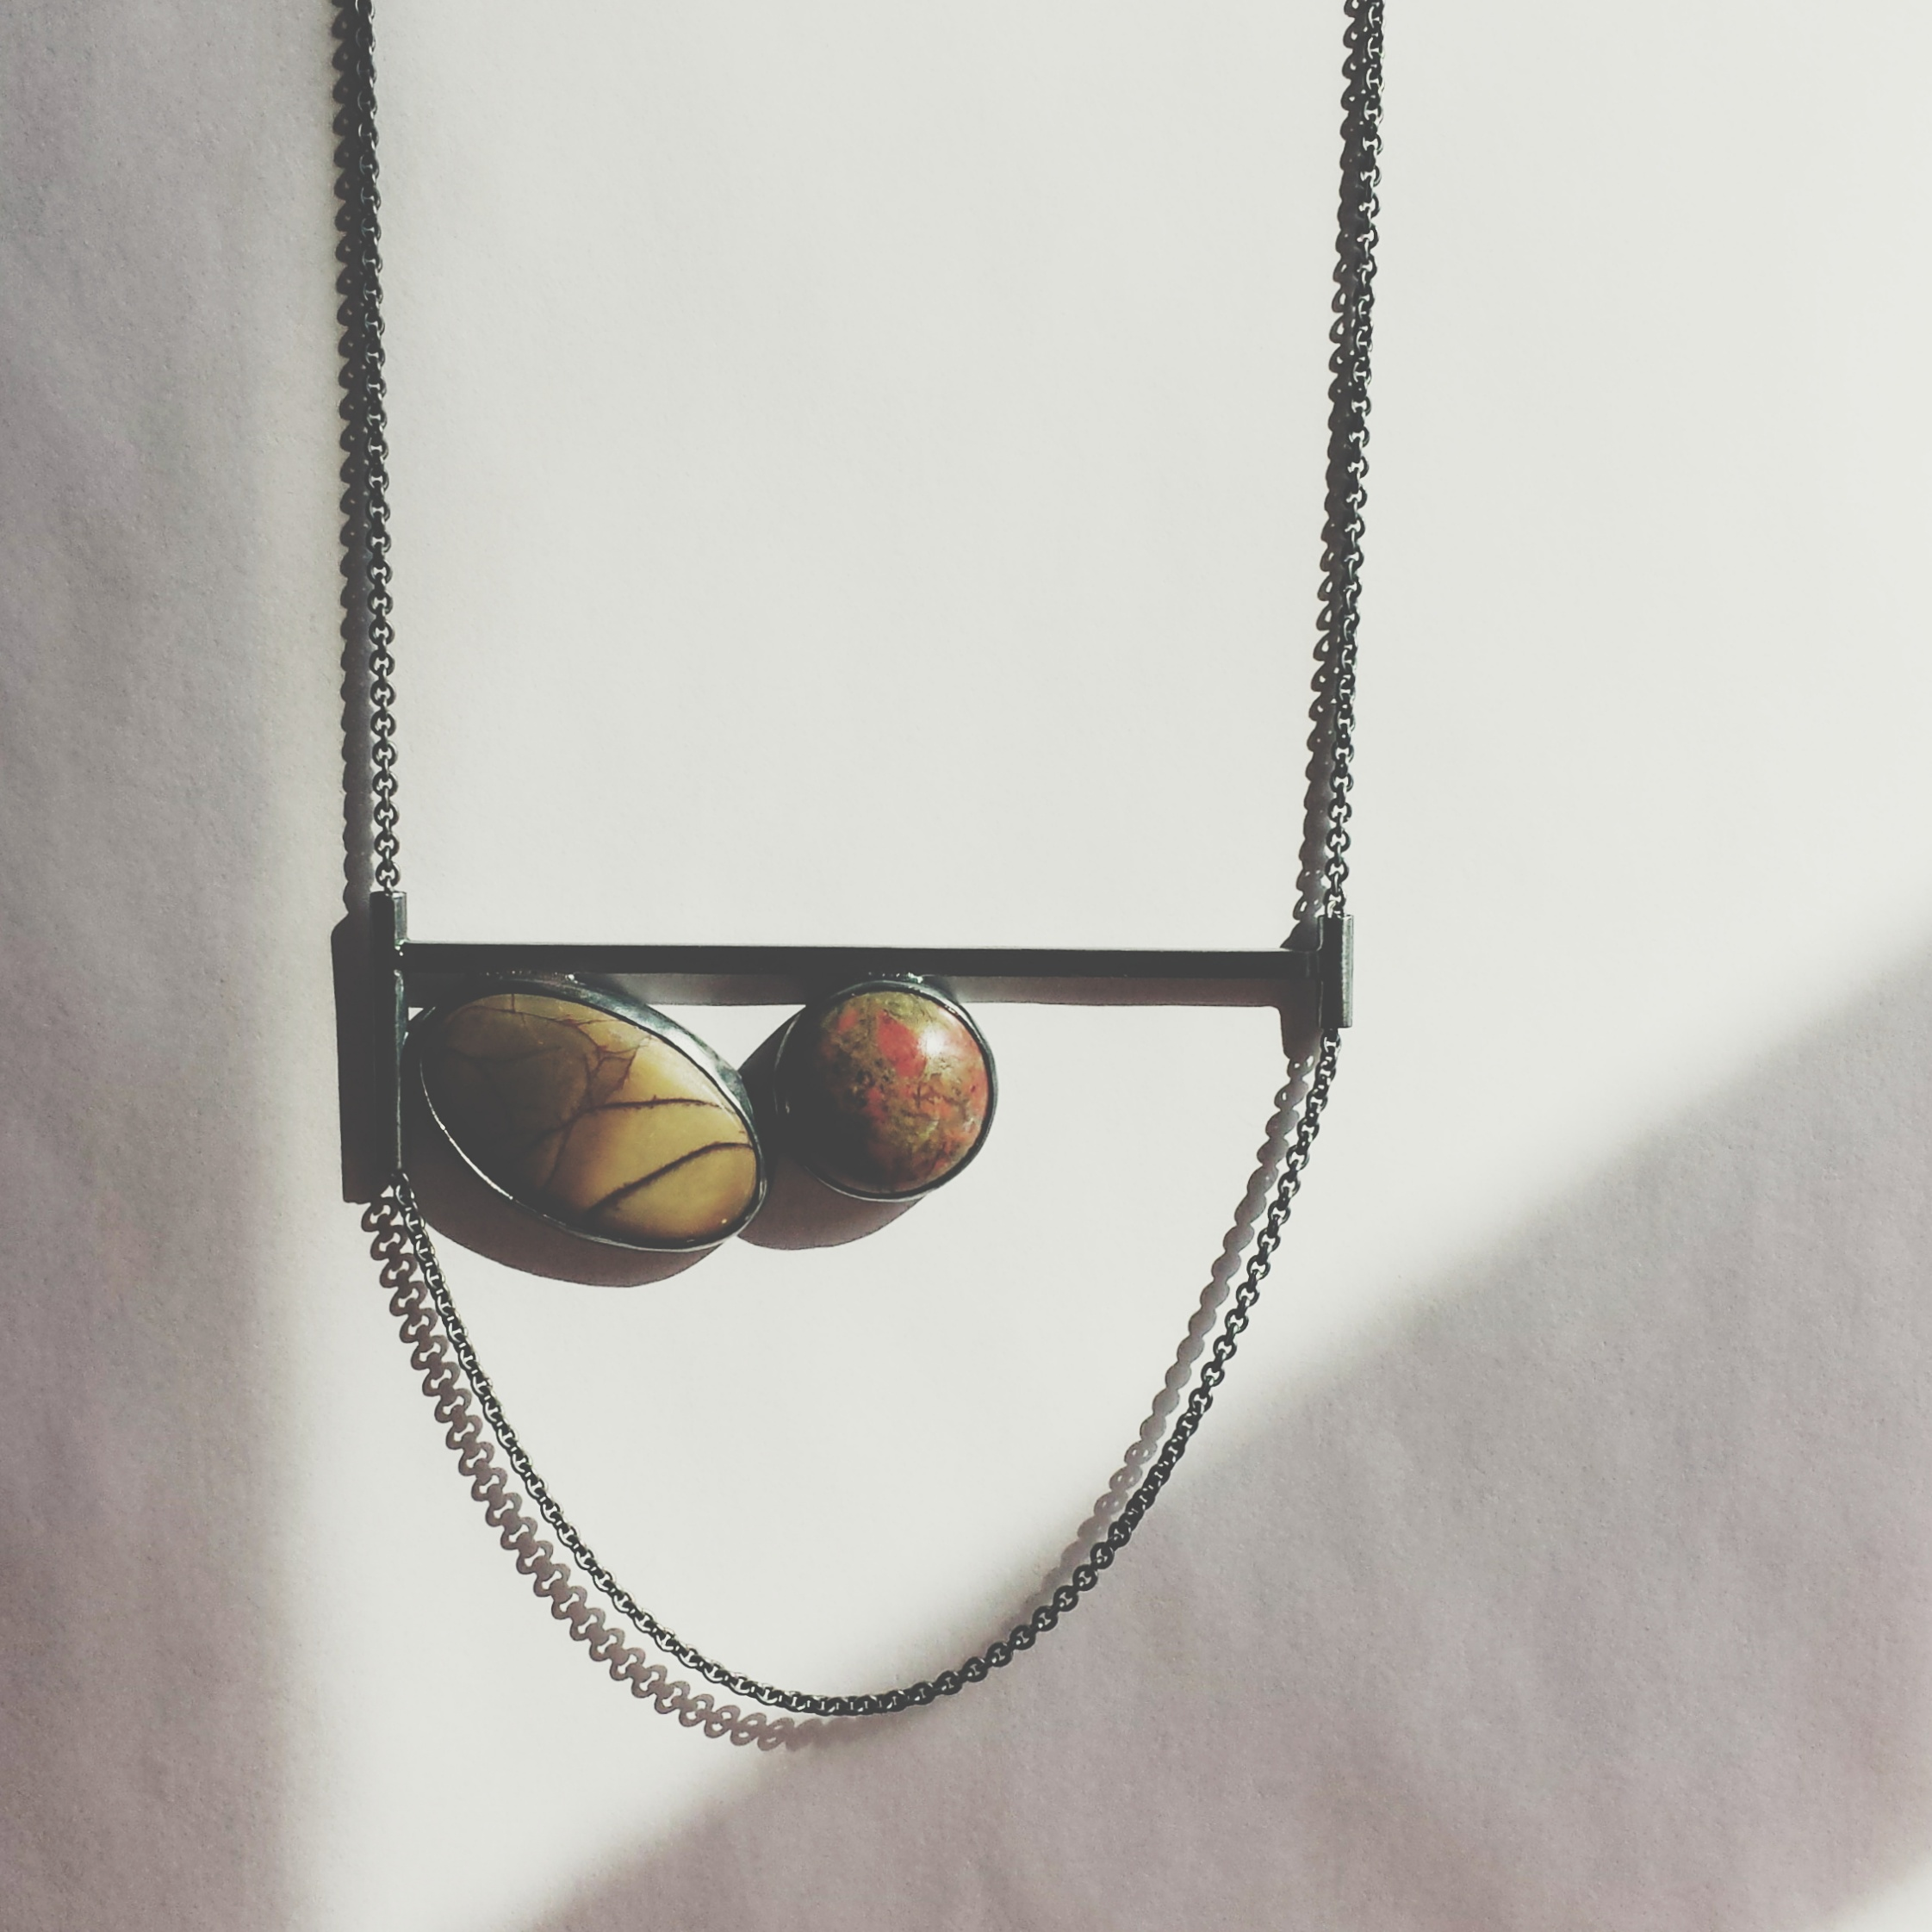 handcrafted sterling silver and jasper balance necklace - meritmade